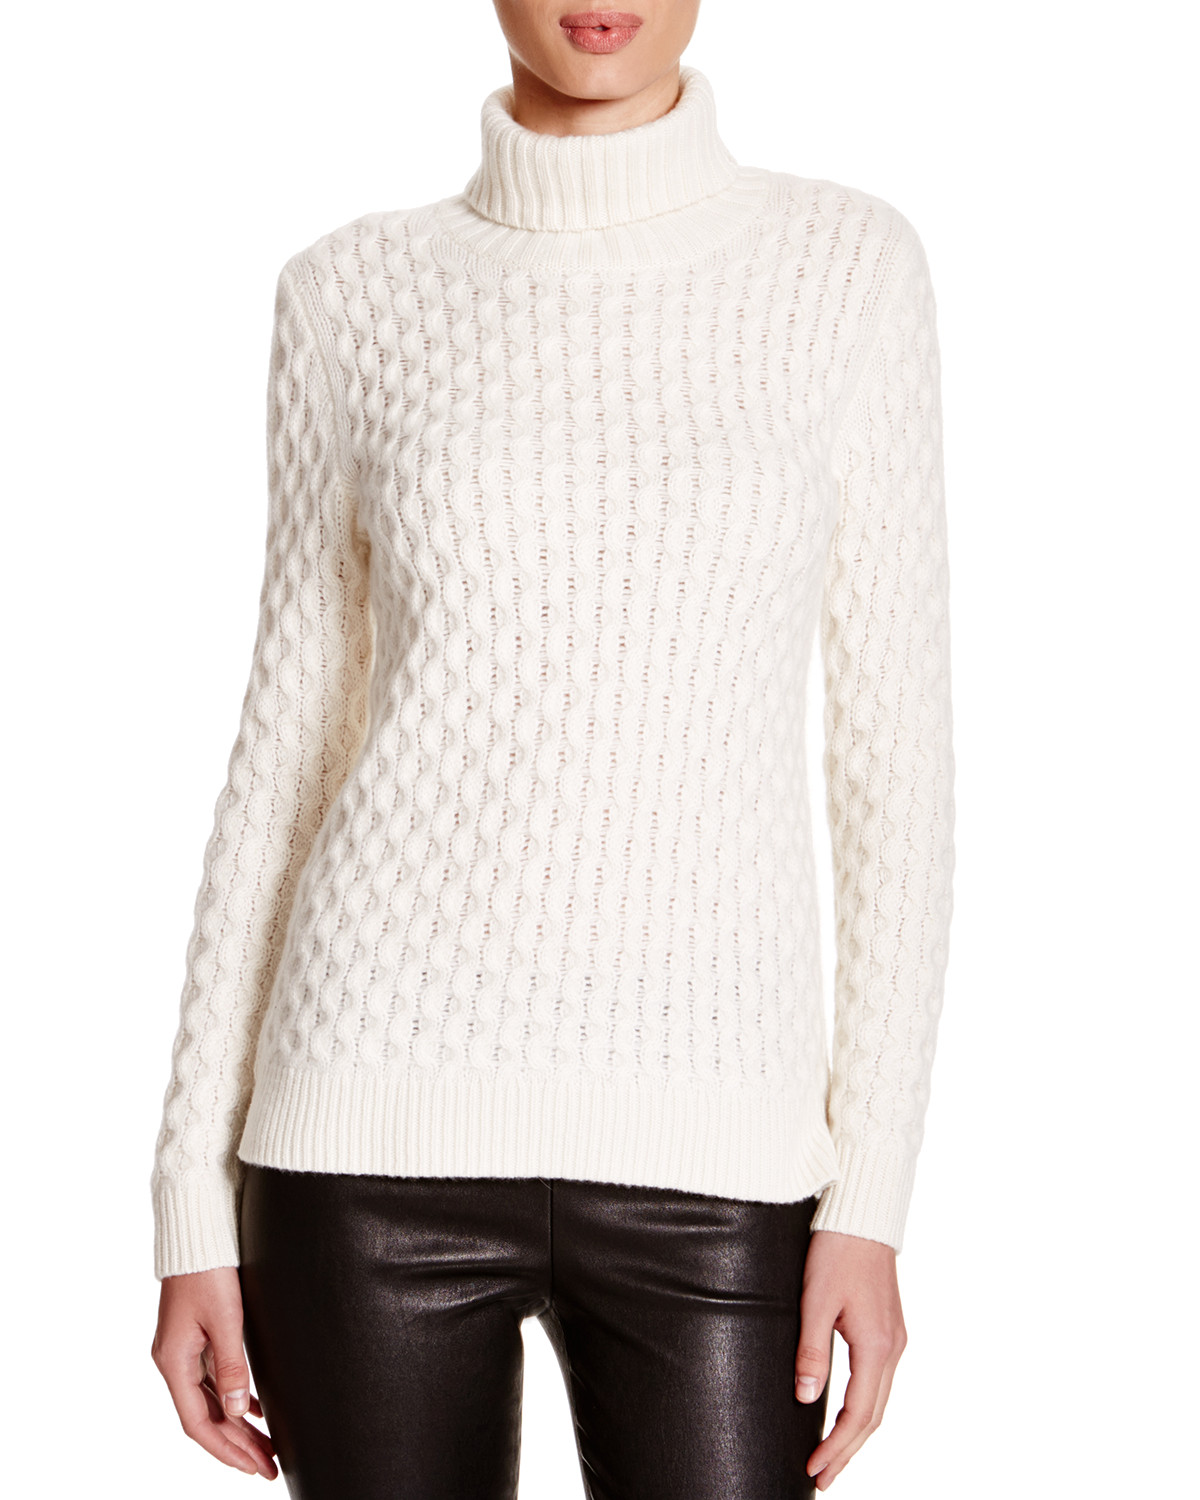 C by Bloomingdale's Cable Knit Turtleneck Sweater image: bloomingdale's and bloomingdales.com